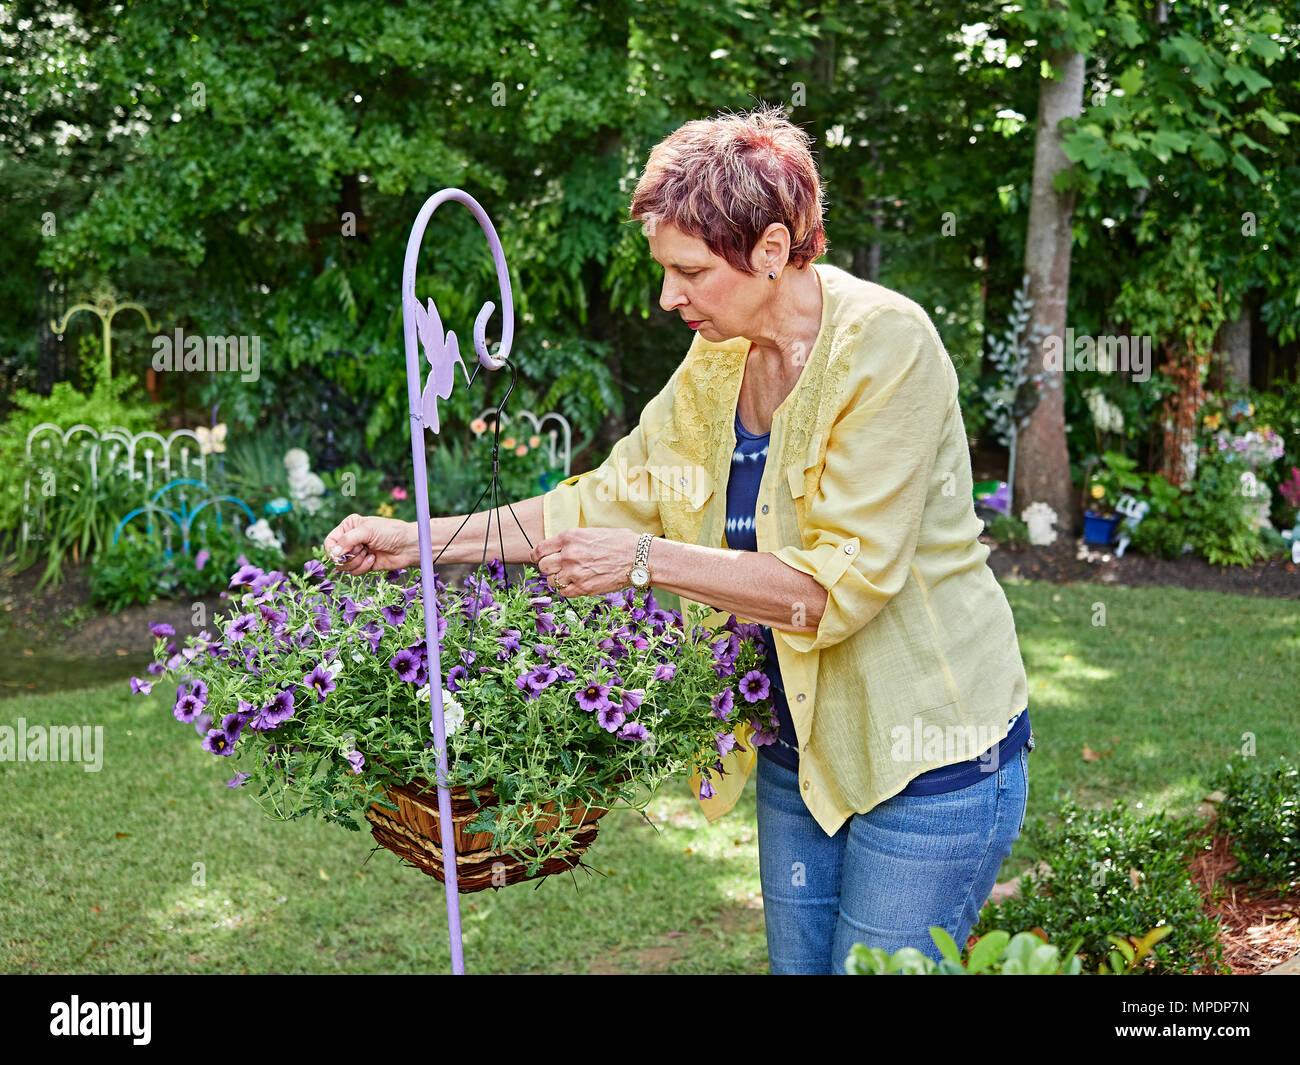 Mature woman gardener tending to her colorful hanging plant full of purple flowers, all part of her garden. - Stock Image